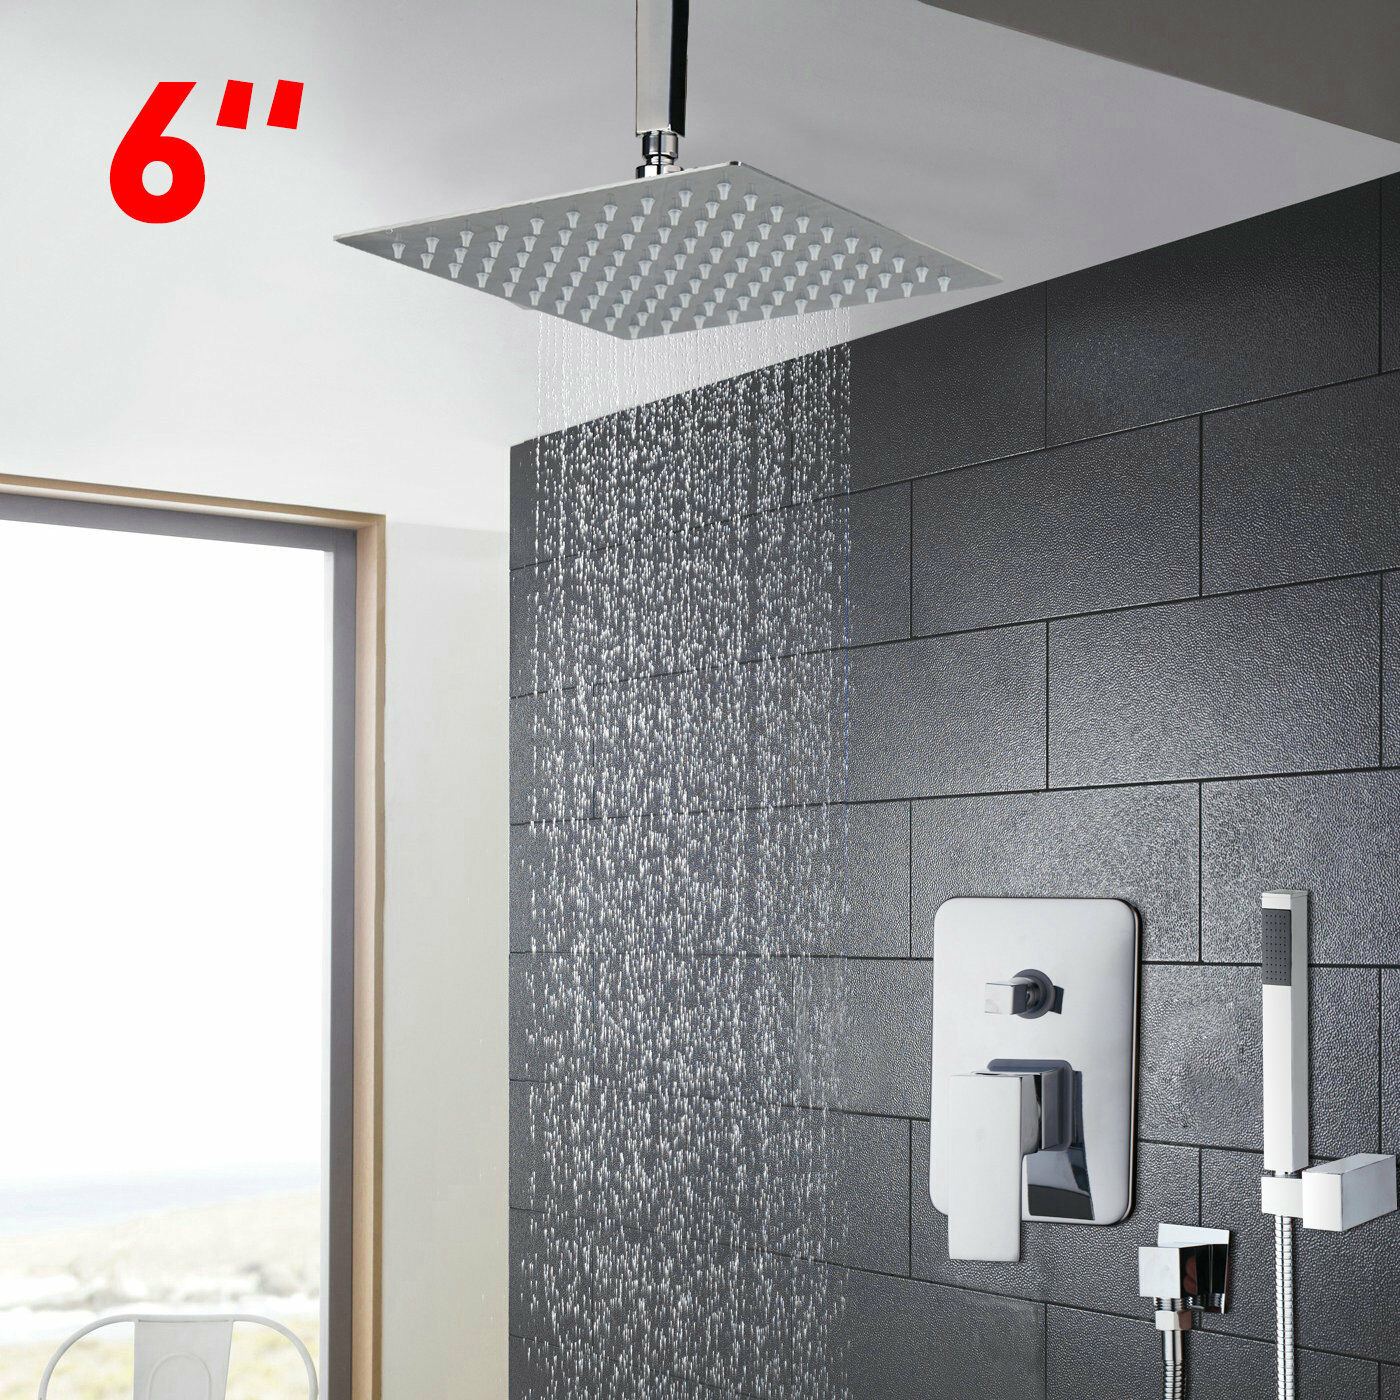 Details About Bathroom Rain Mixer Ceiling Mount Shower Faucet Combo Set 6 Rainfall Shower Head